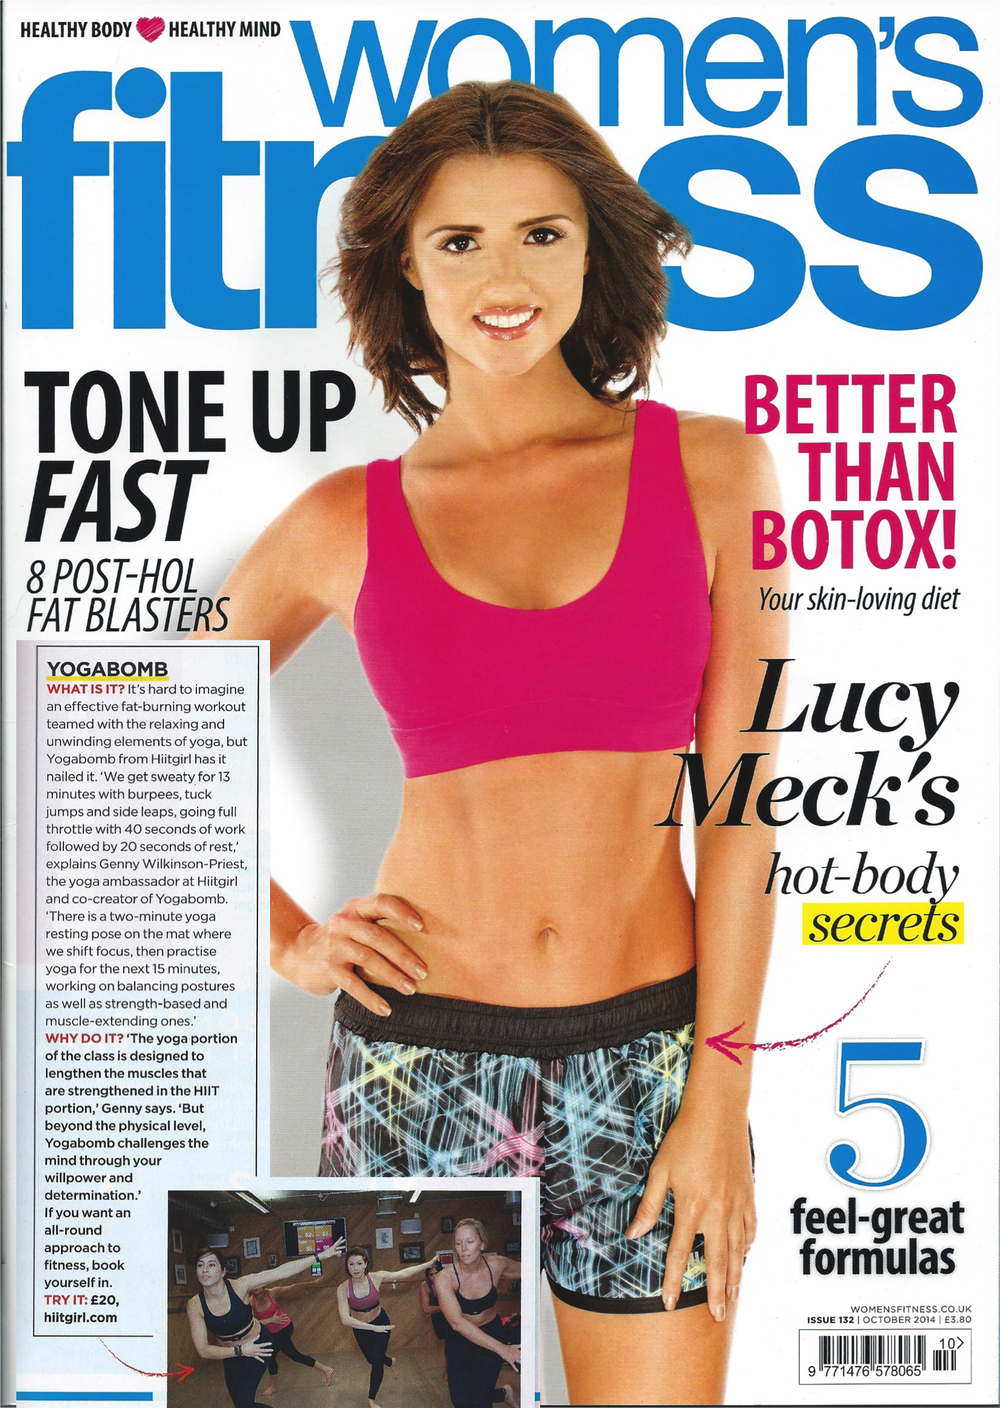 Women's Fitness, Oct 2014